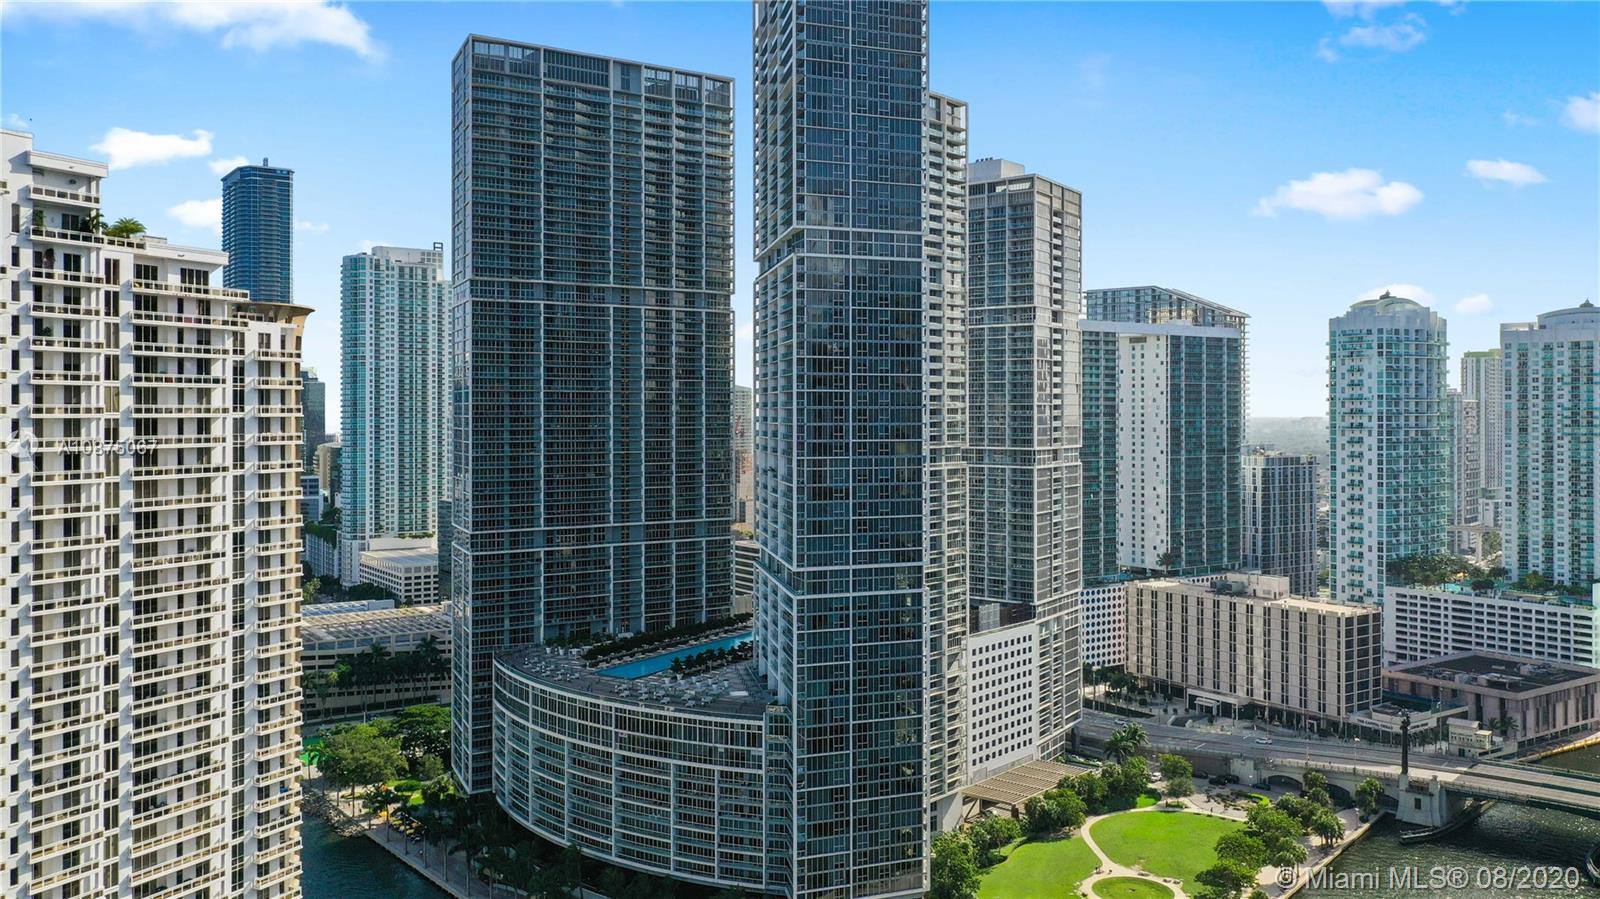 Luxury at it's best with breathtaking 360 degree water views from the largest 3 bedroom line with 12' ceilings. Wraparound balcony overlooking Brickell Key & Port of Miami. This upgraded 3/2/1 features leather covered custom closets, elegant lightning, top of the line Subzero & Wolf appliances. Elegantly decorated and just a stroll away from Citicentre, Downtown and Mary Brickell Village. Home to Cipriani and Cantina La Veinte. Enjoy incredible sunsets over the water. 24 hour notice for showings.